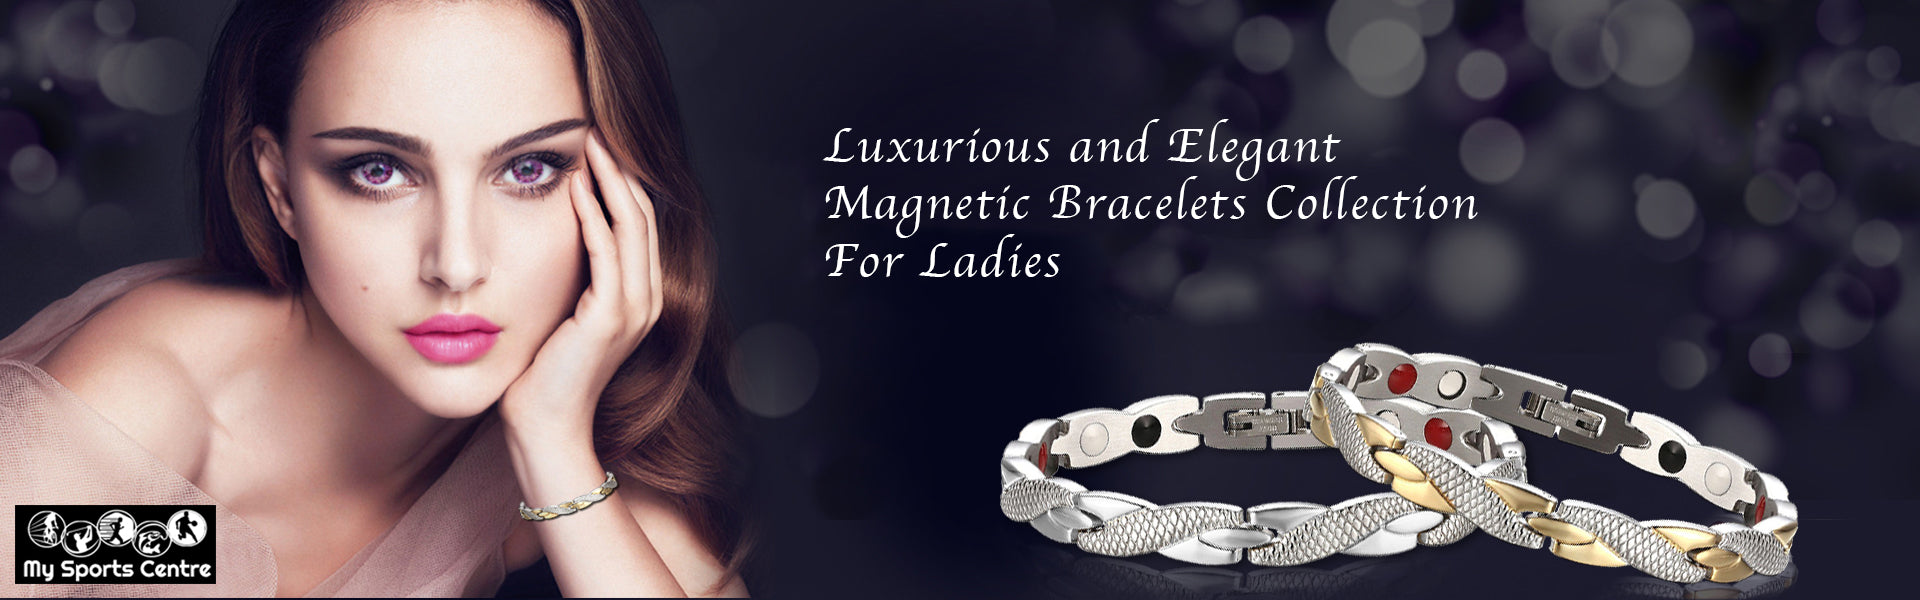 Magnetic Bracelets Collection For Ladies